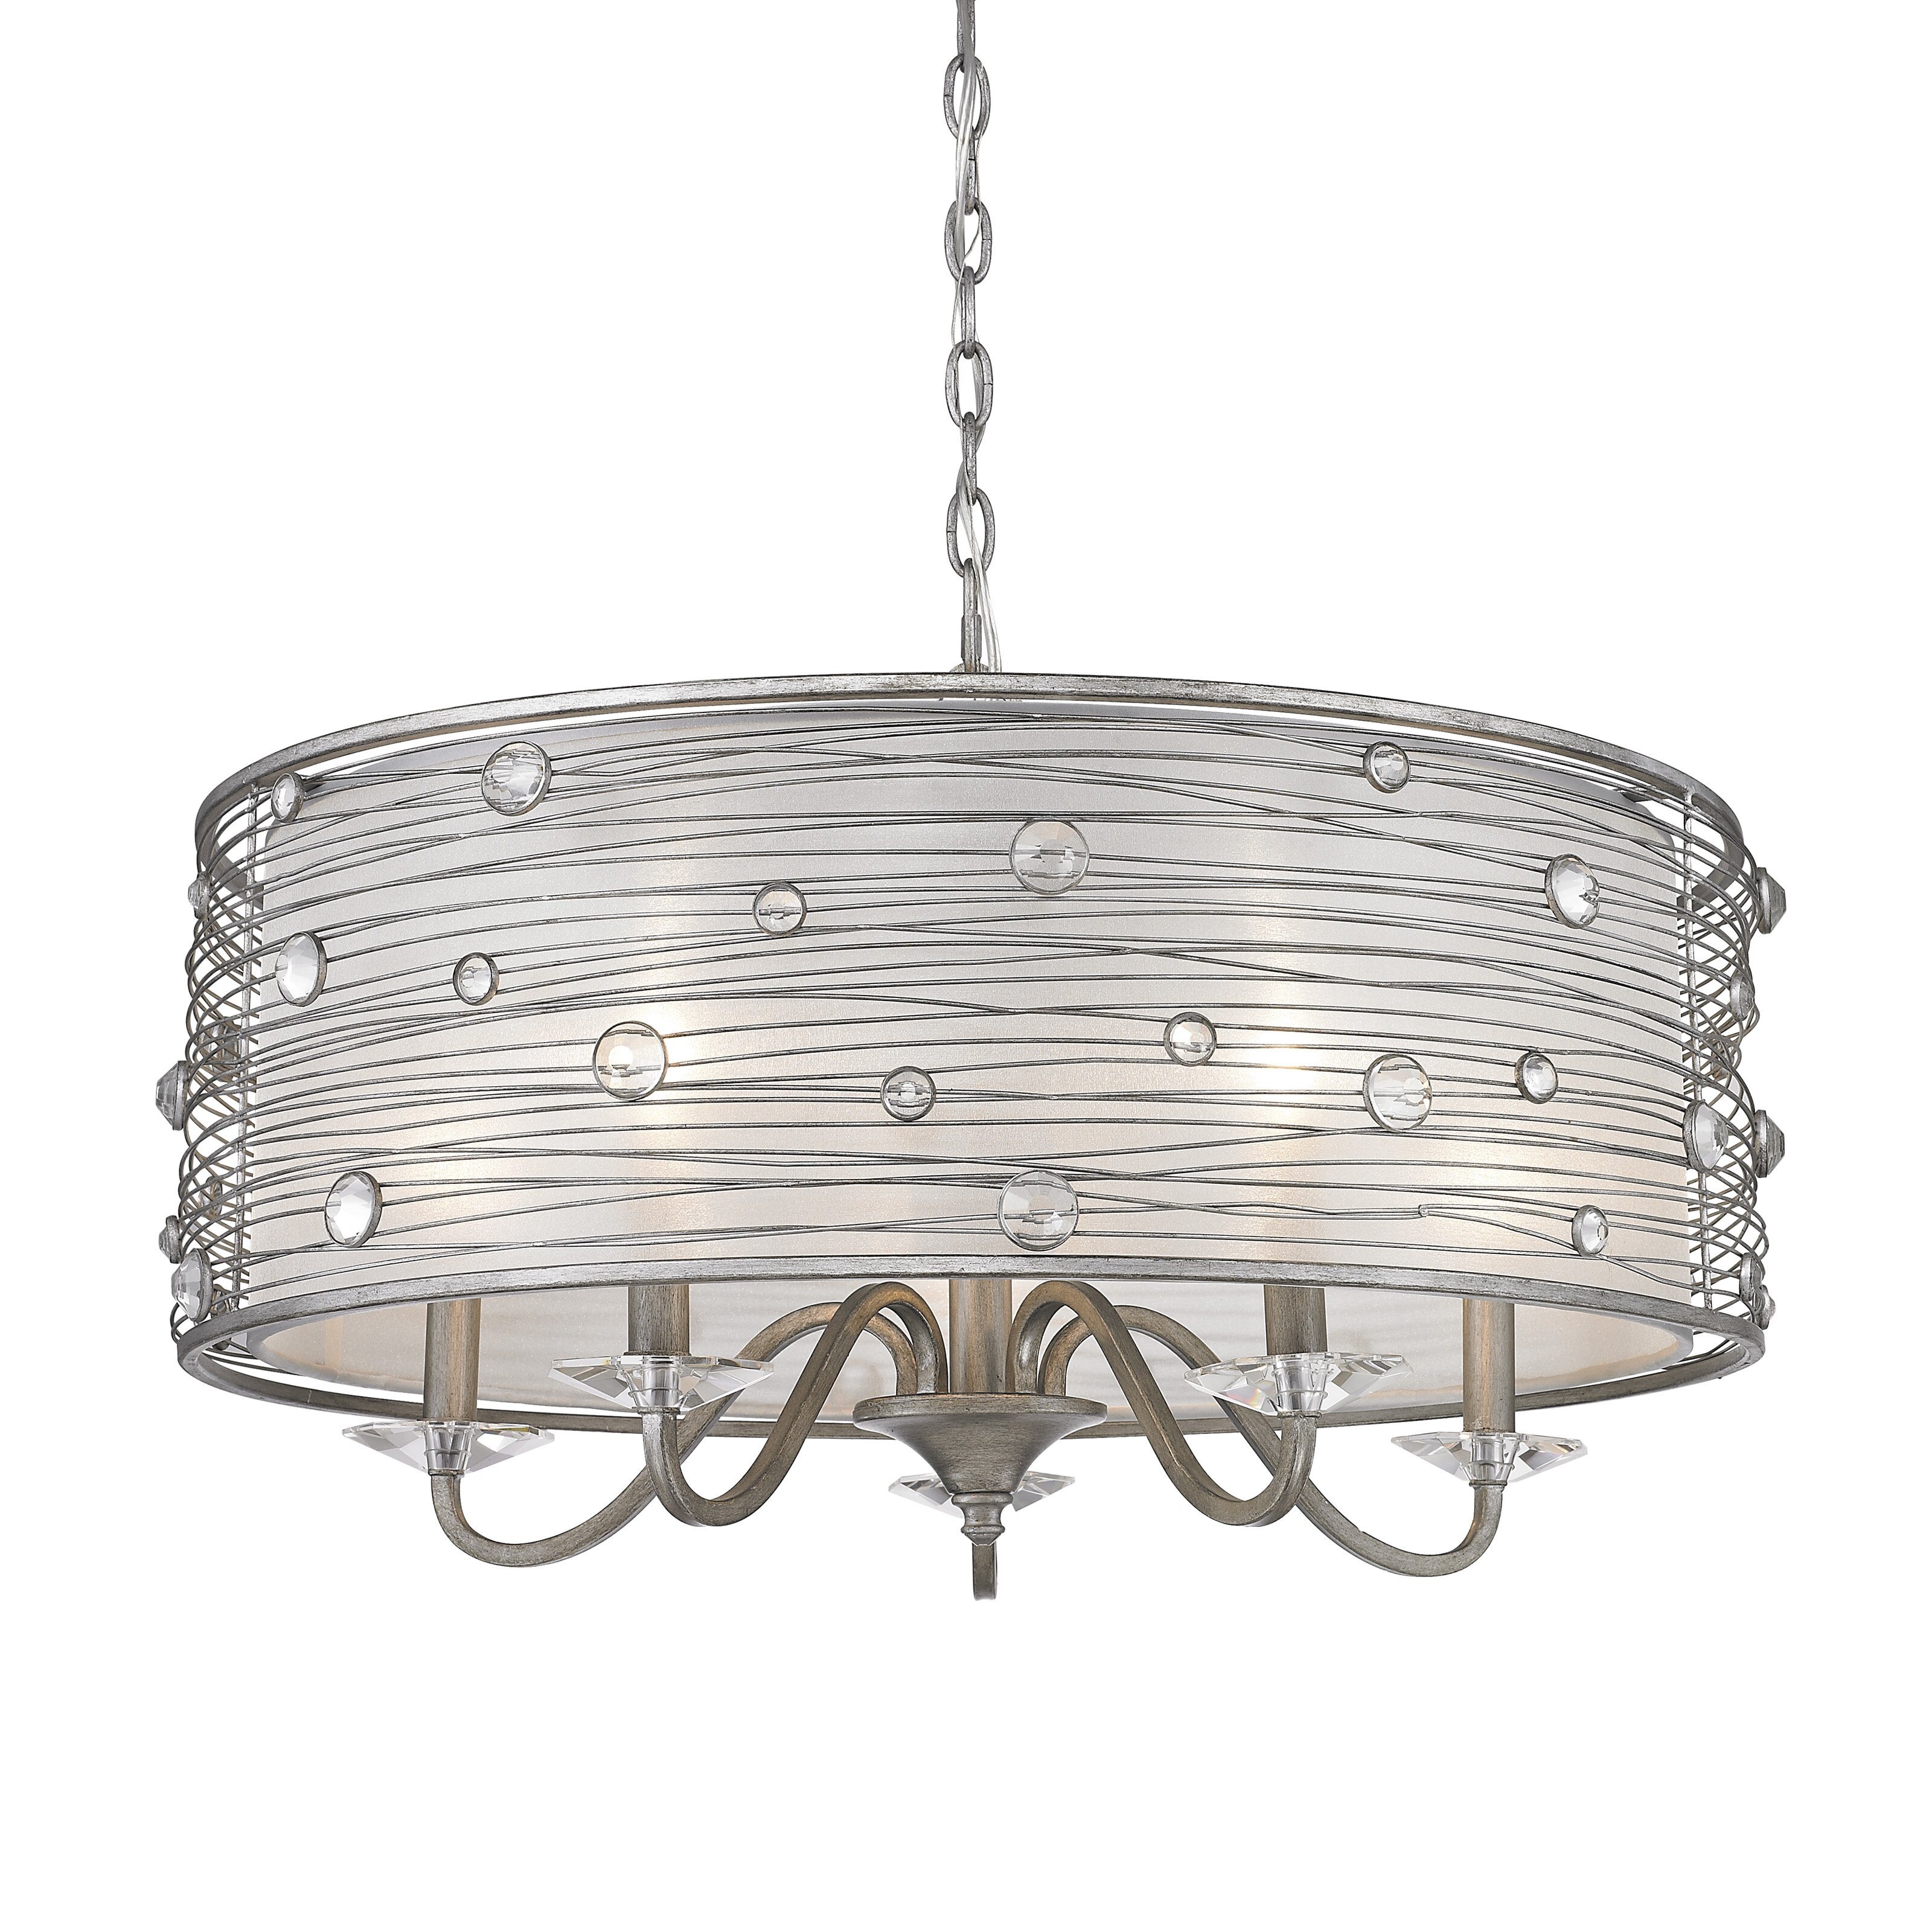 Golden lighting joia 5 light drum chandelier reviews for Dining room 5 light chandelier